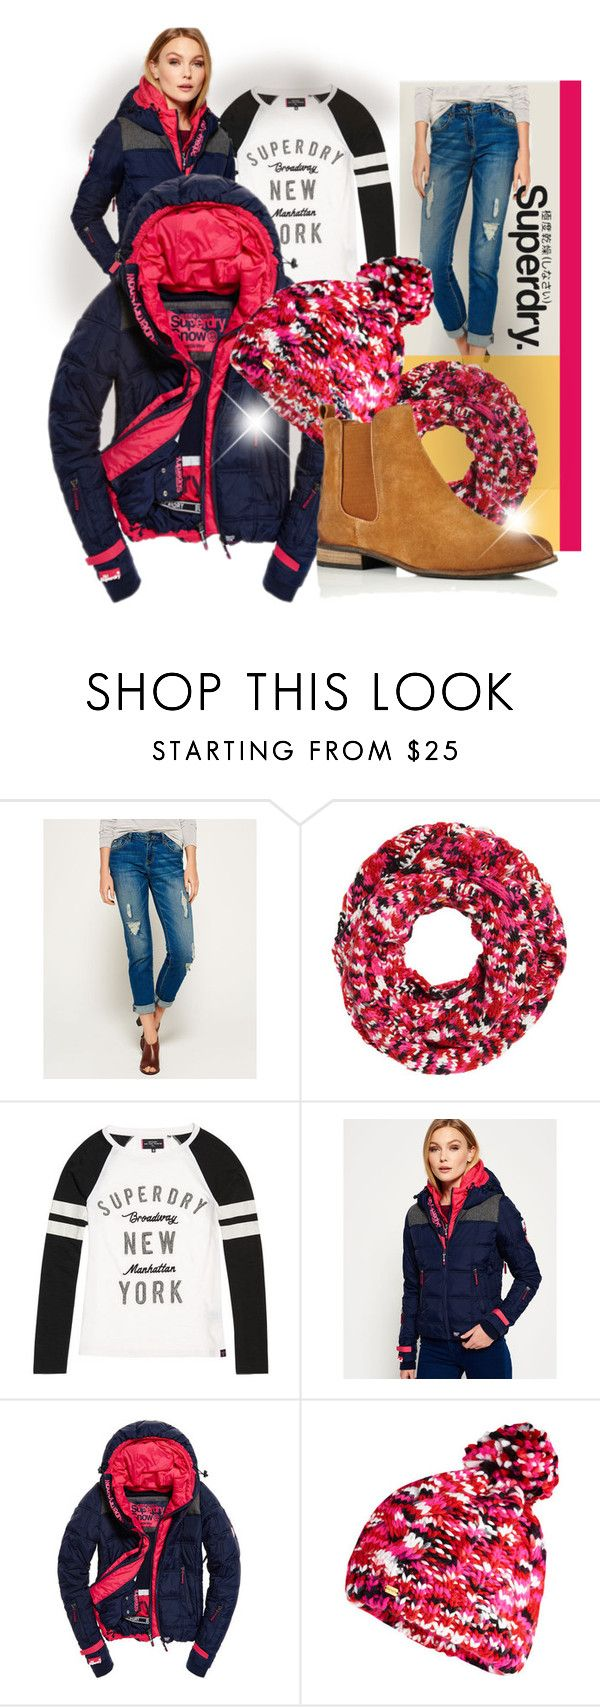 """Superdry Style"" by interesting-times ❤ liked on Polyvore featuring Superdry and MySuperdry"